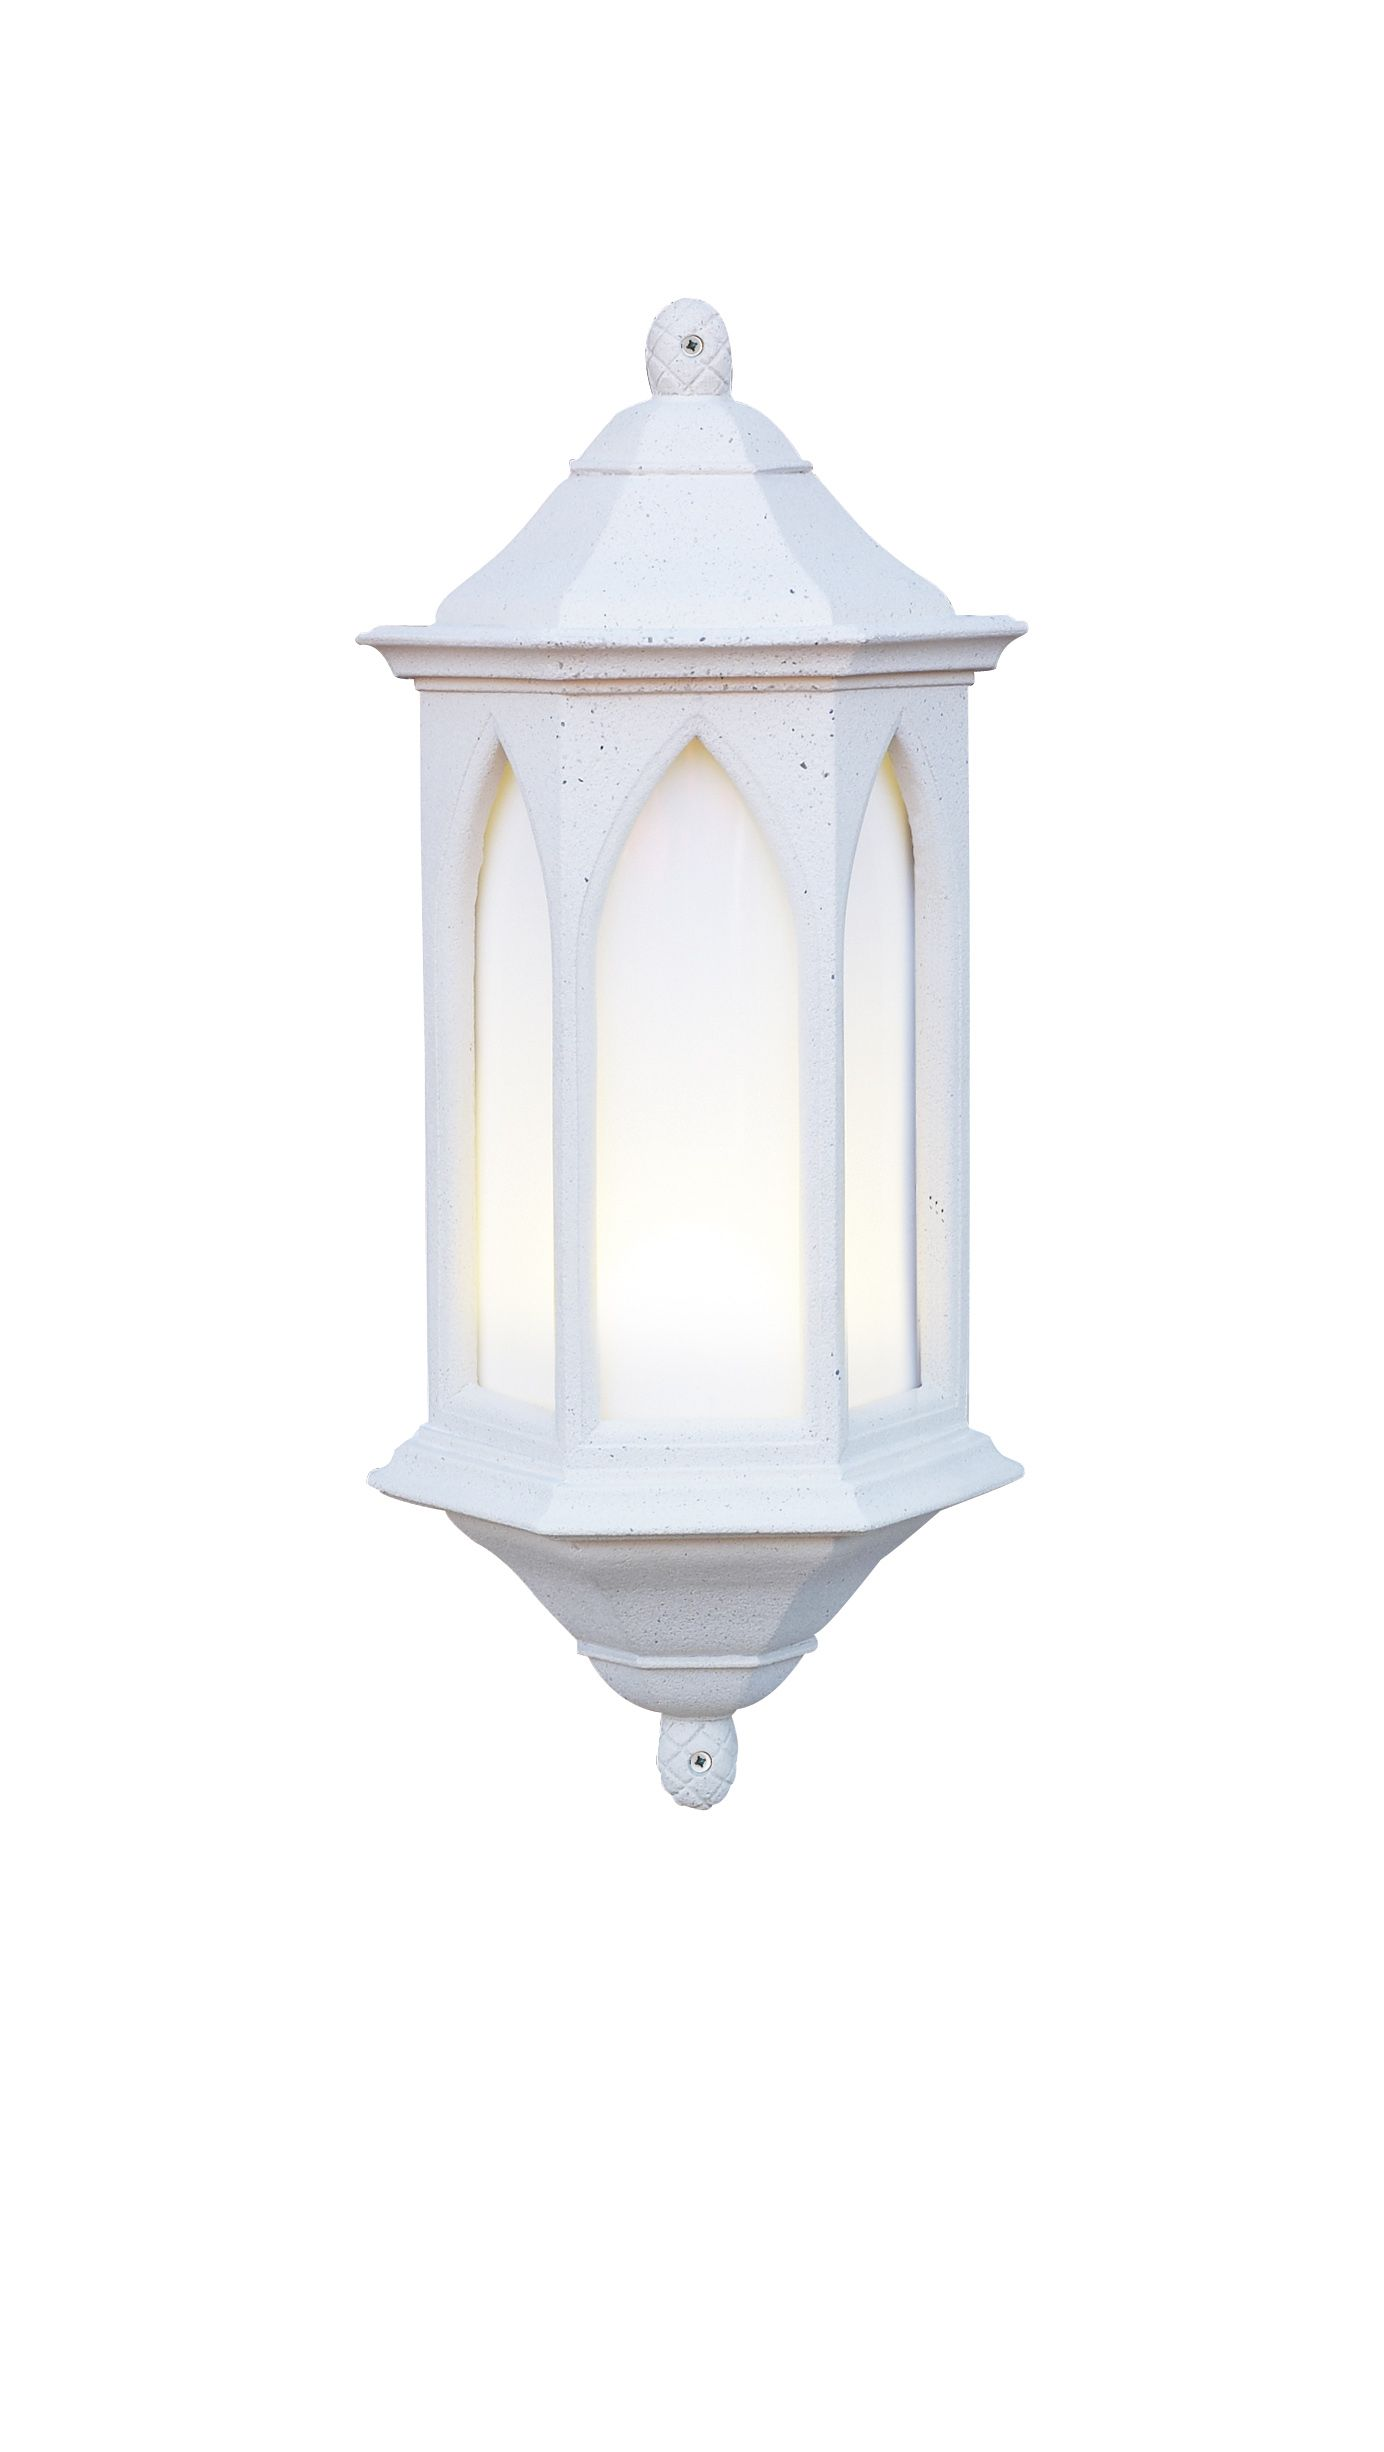 Low Energy Outdoor Wall Lights : York 1-light Low Energy Outdoor Wall Light Stone finish Small YOR34 LE 089222